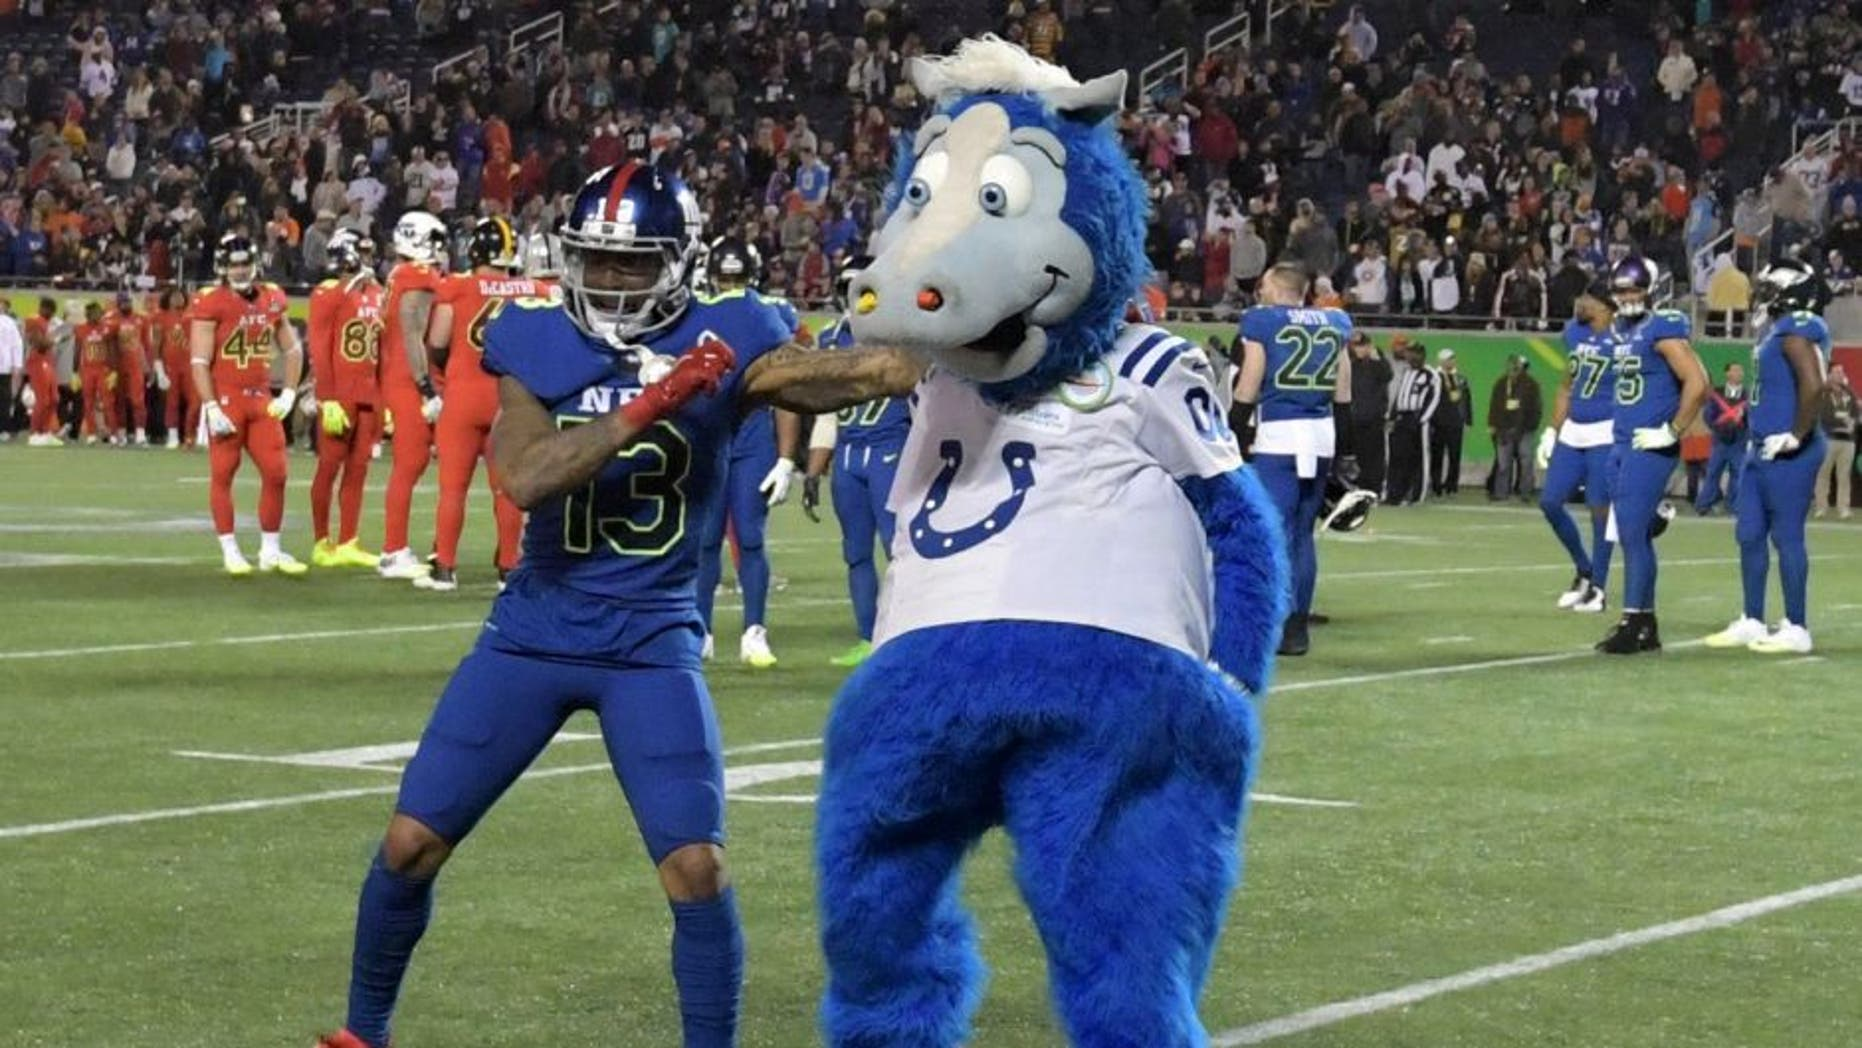 Jan 29, 2017; Orlando, FL, USA; NFC receiver Odell Beckham Jr. of the New York Giants (13) dances with Indianapolis Colts mascot Blue during the 2017 Pro Bowl at Camping World Stadium. The AFC defeated the NFC 20-13. Mandatory Credit: Kirby Lee-USA TODAY Sports